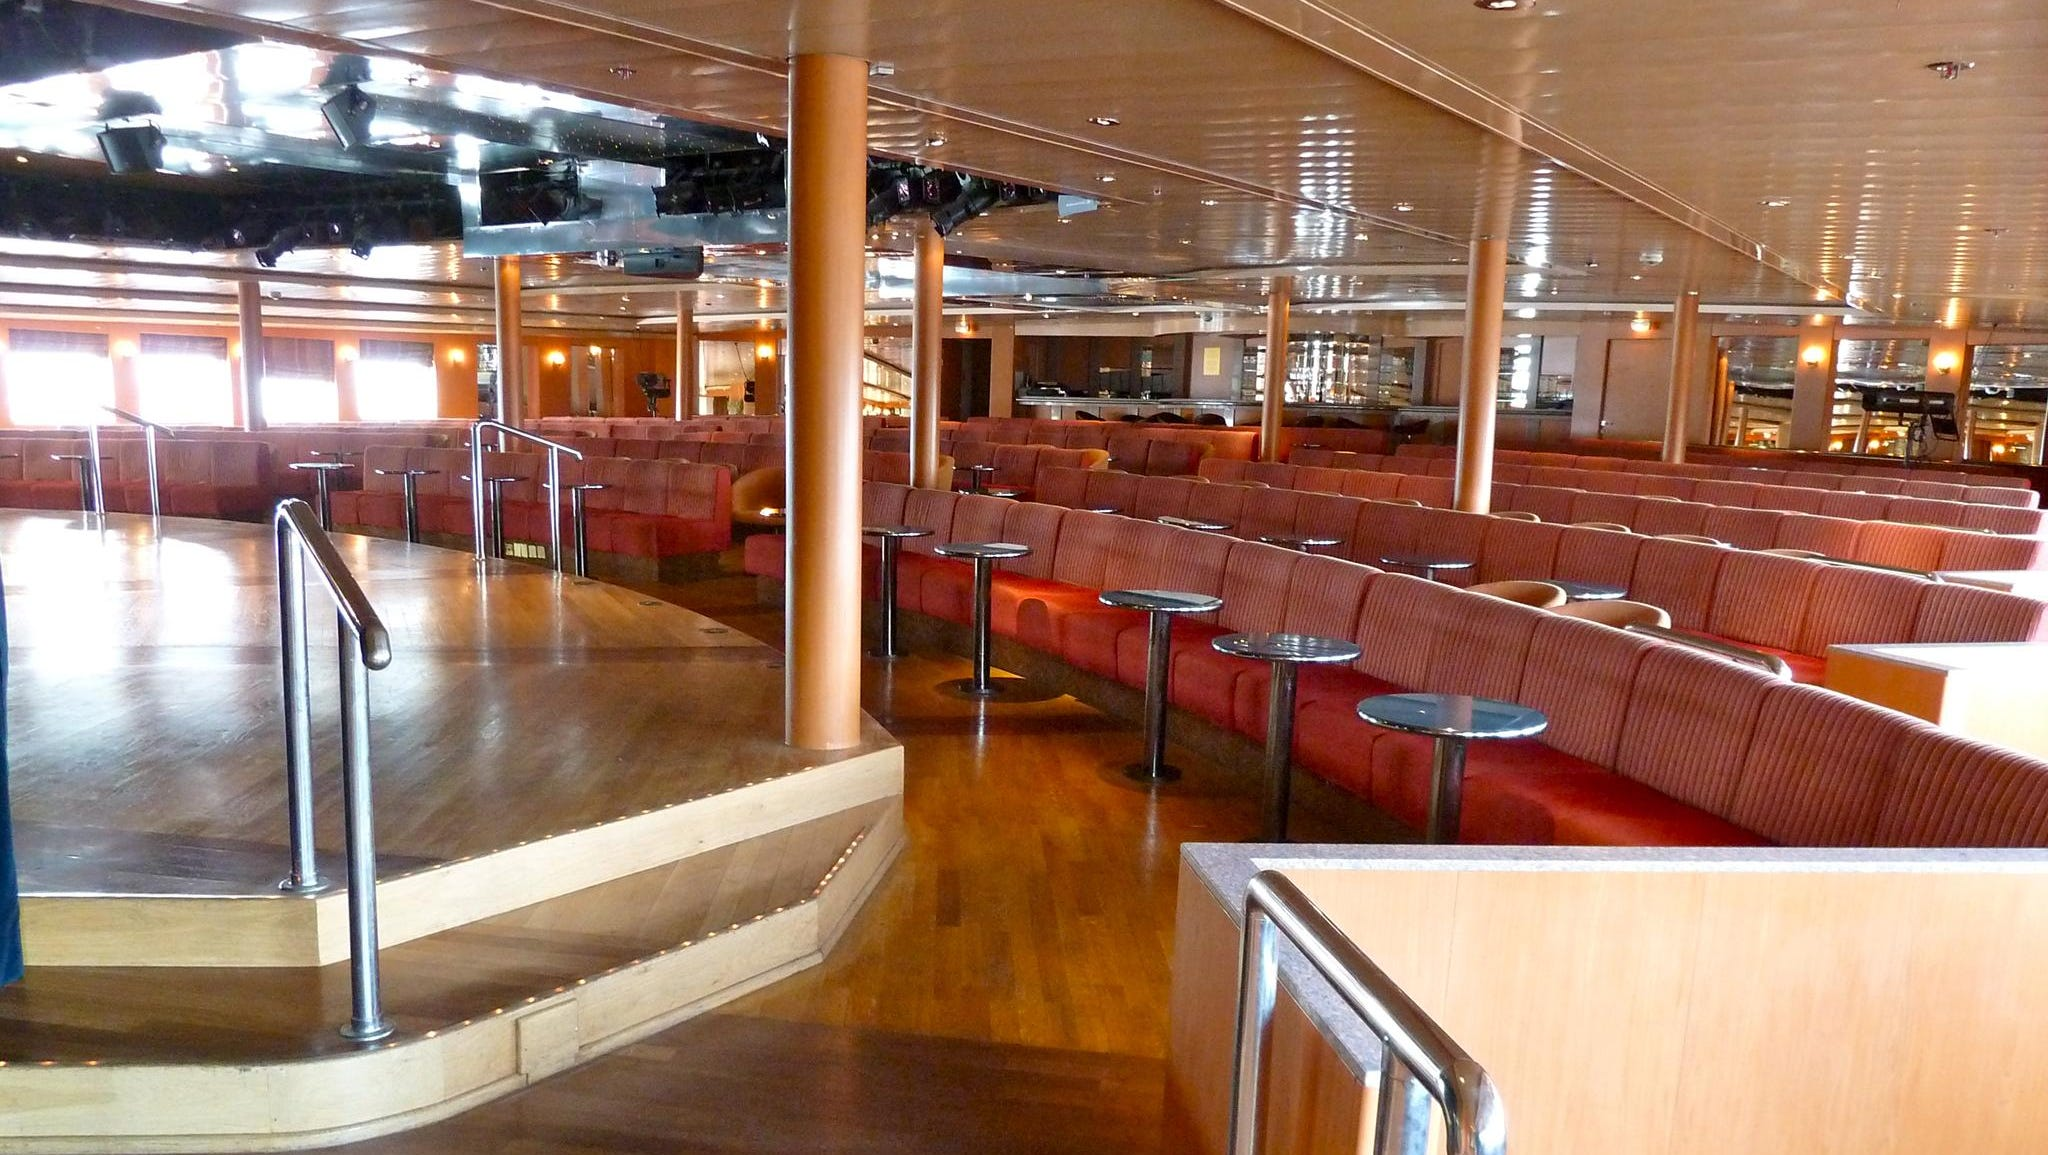 Beginning an entire level of public rooms, the 438-seat Marco Polo Lounge is the ship's showroom and theater on forward Magellan Deck. This is a popular venue for enrichment lectures, concerts and the mainstage entertainment.